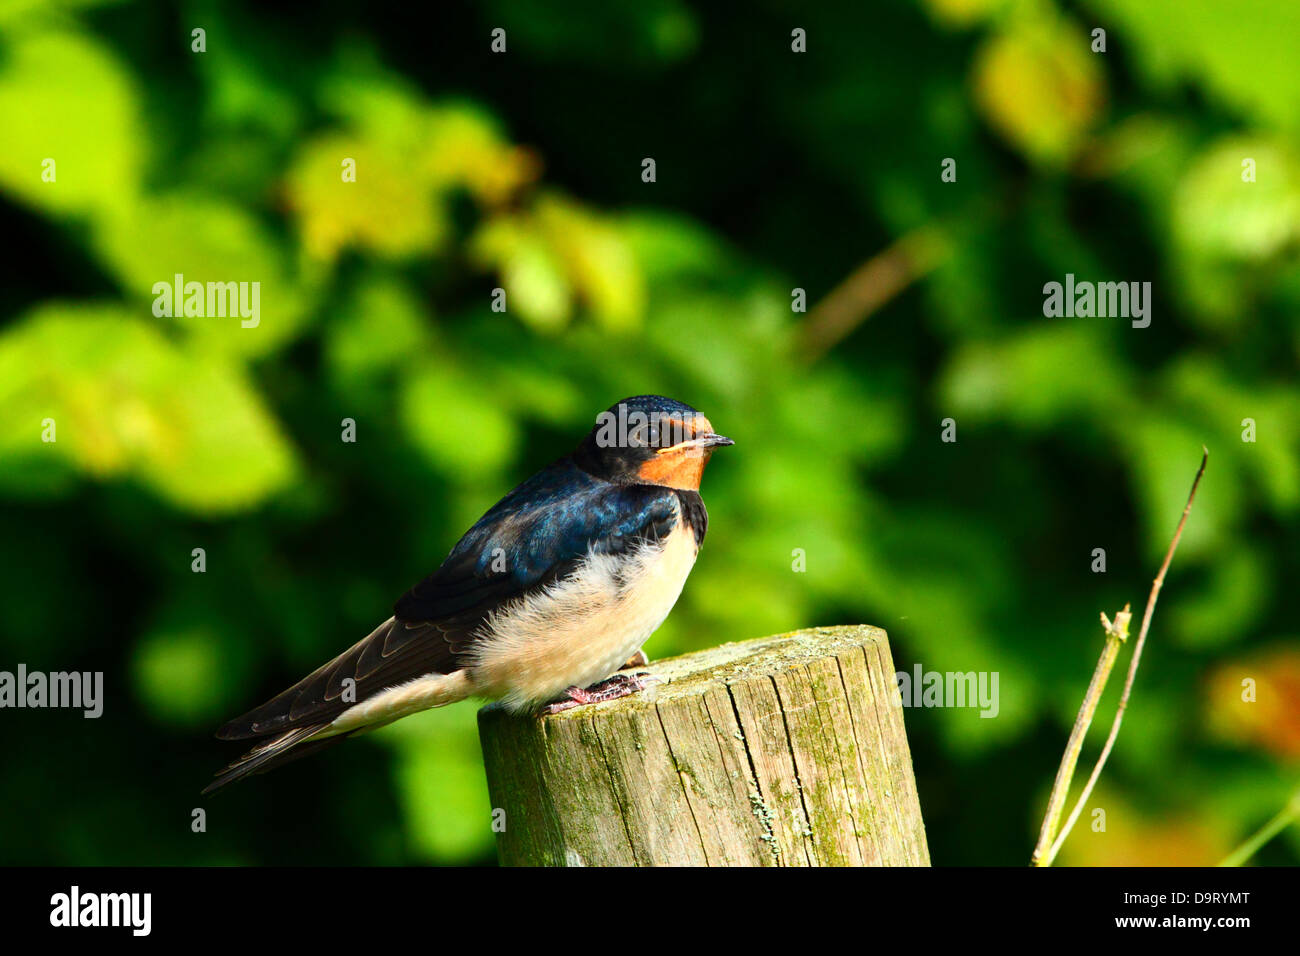 baby swallow on fence post waiting to be fed by adult - Stock Image